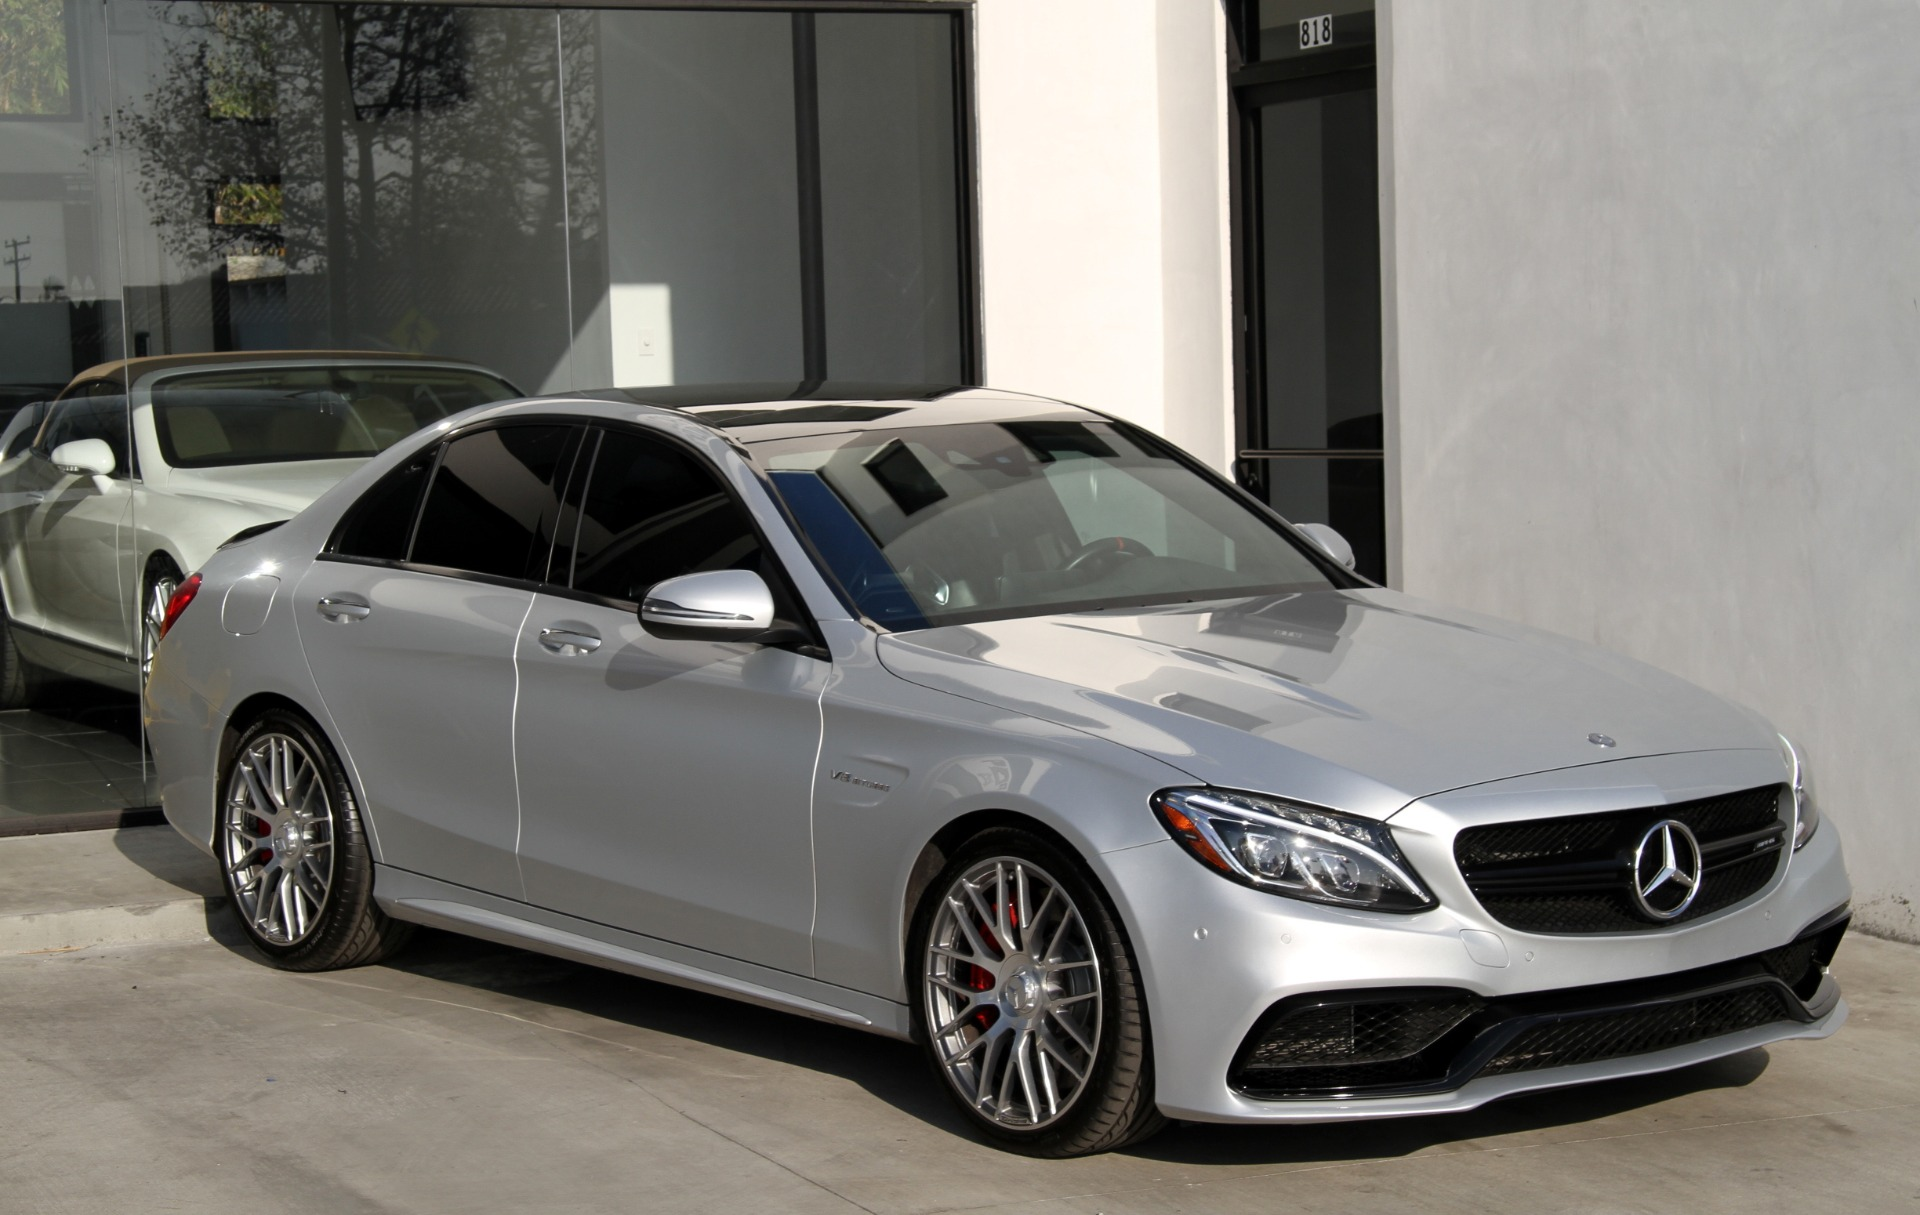 2016 mercedes benz c63 s amg stock 6004 for sale near for Mercedes benz dealership for sale